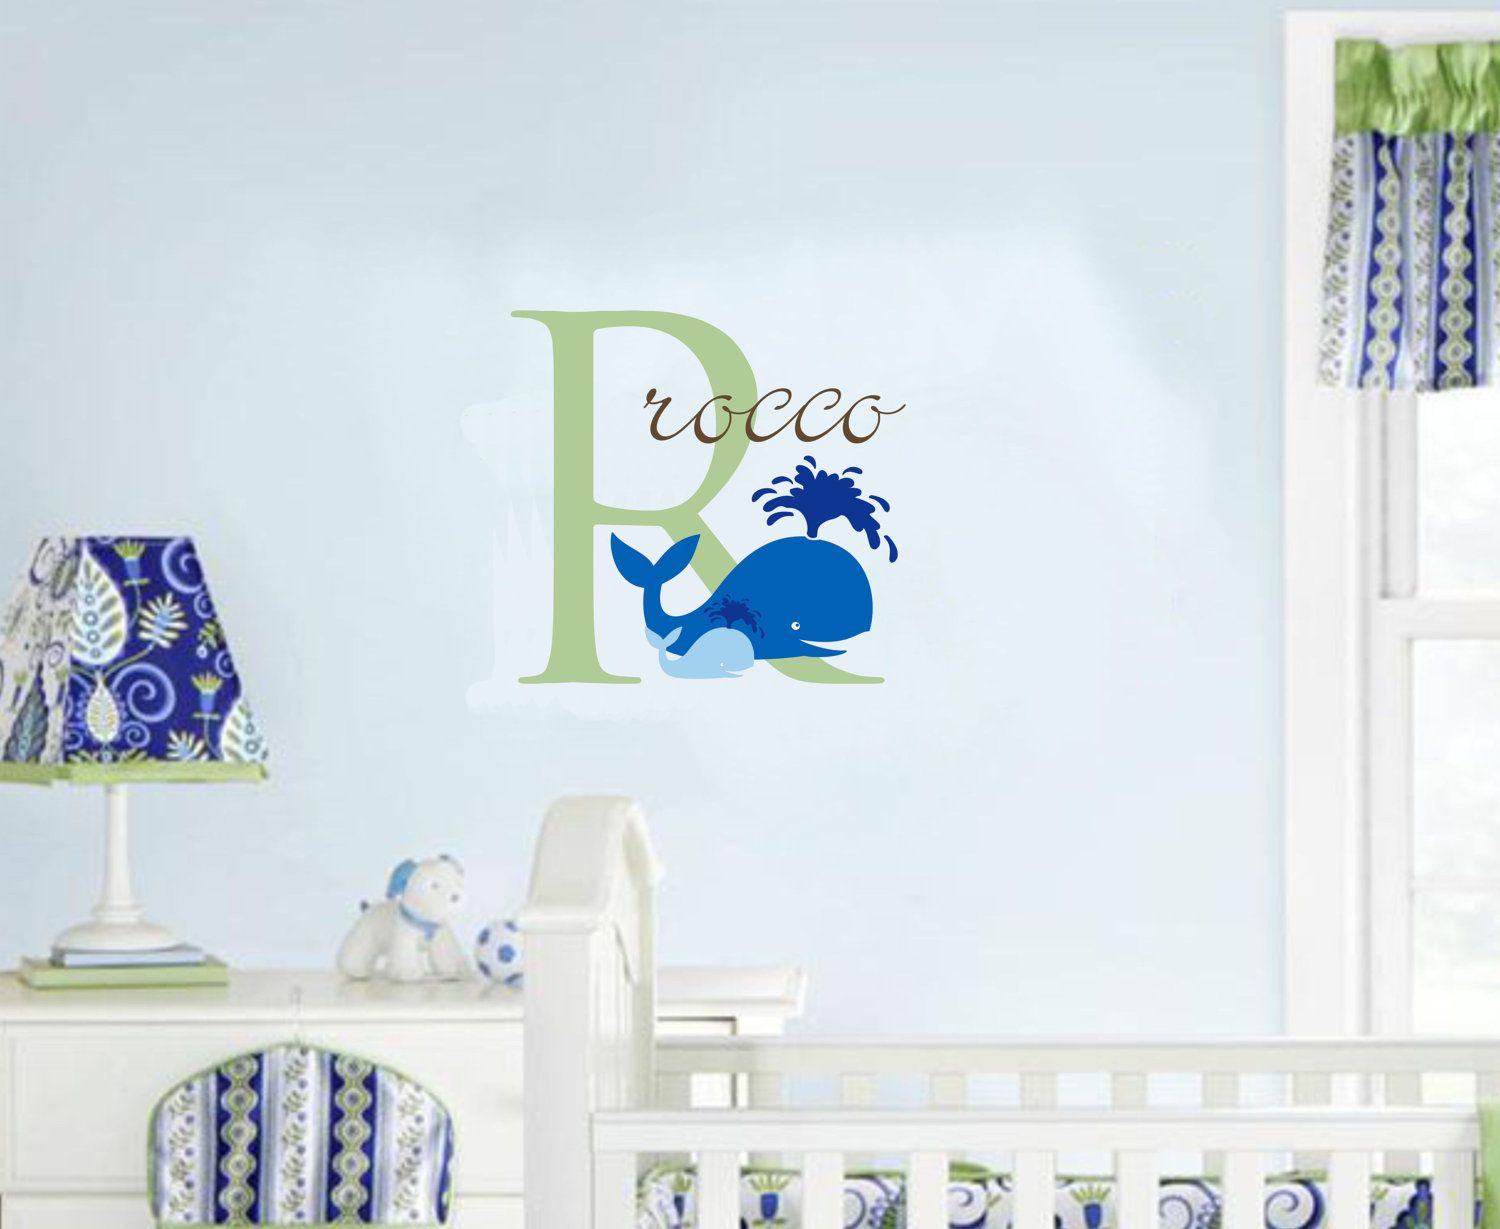 Wall decal baby boy nursery name whale ocean nautical beach baby name nautical wall decal whale ocean nursery decor 2400 via etsy amipublicfo Choice Image